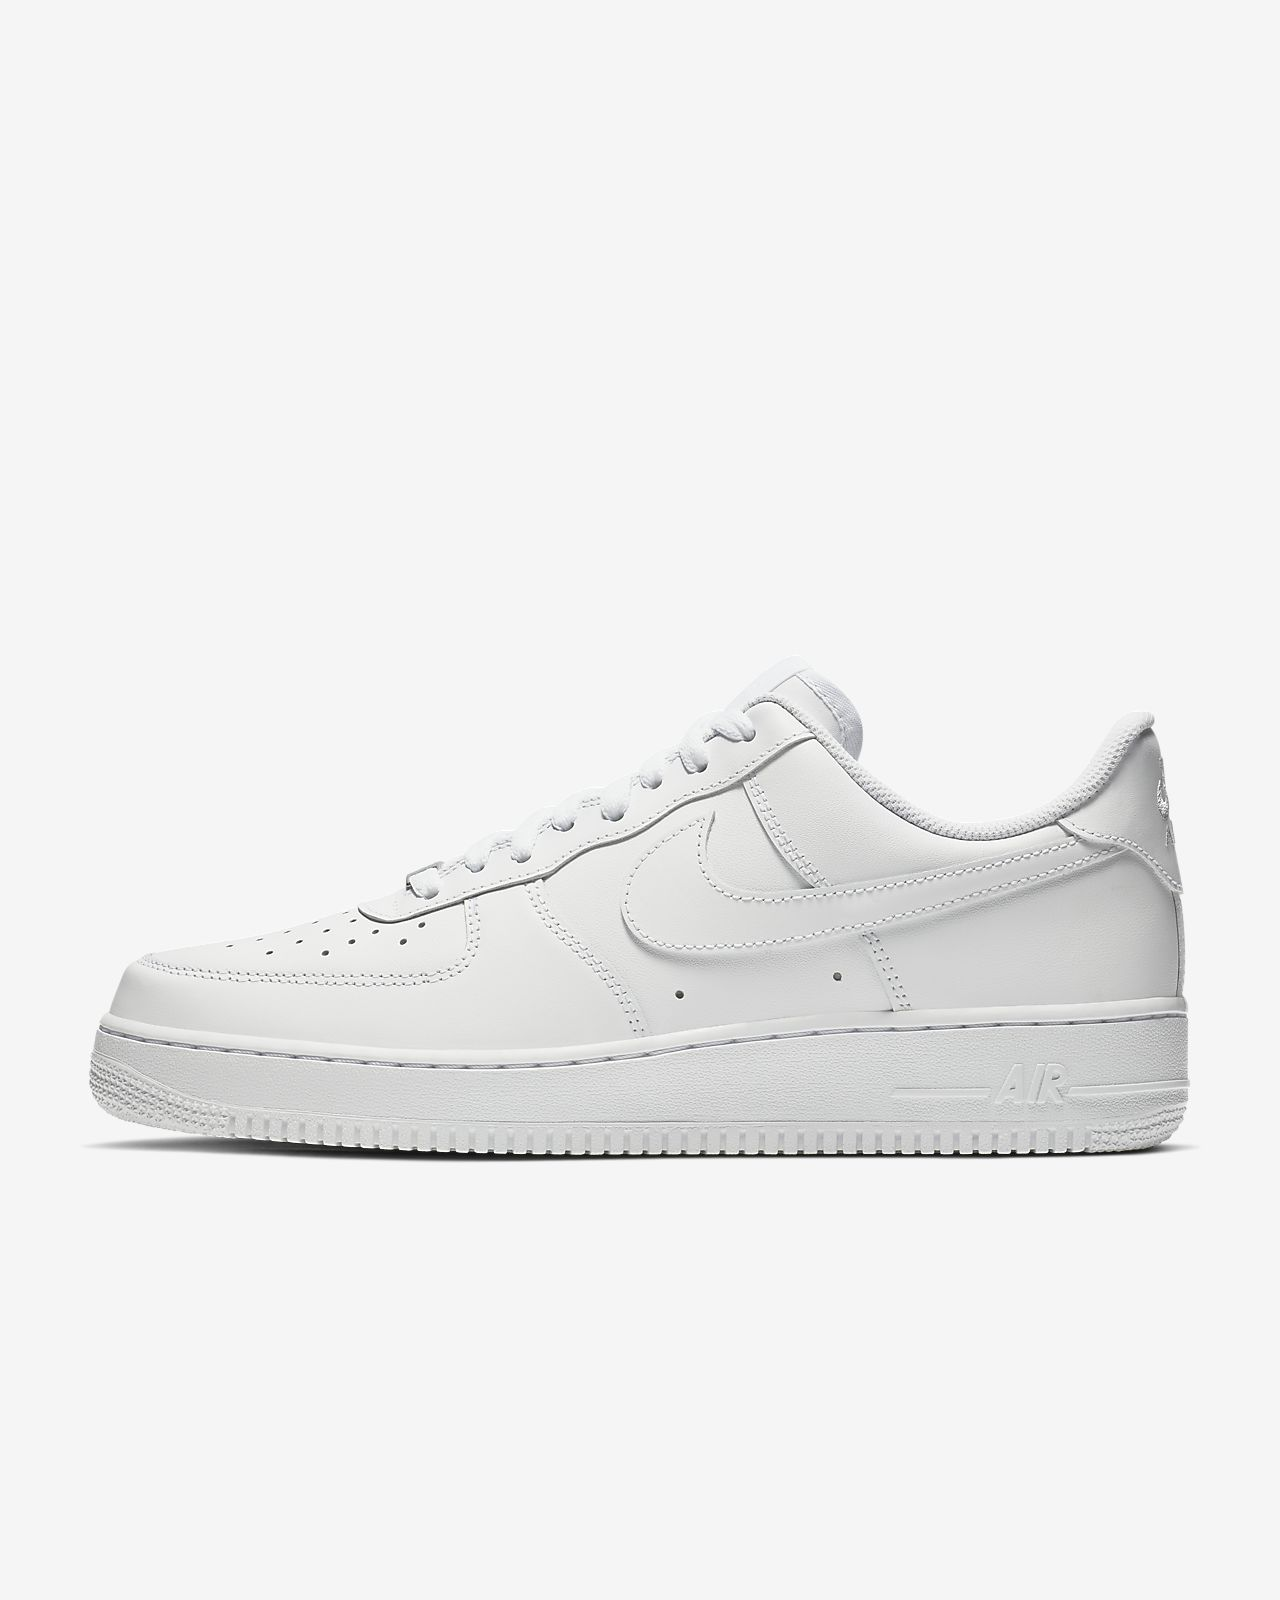 nike air force 1 mens fashion sneaker nz